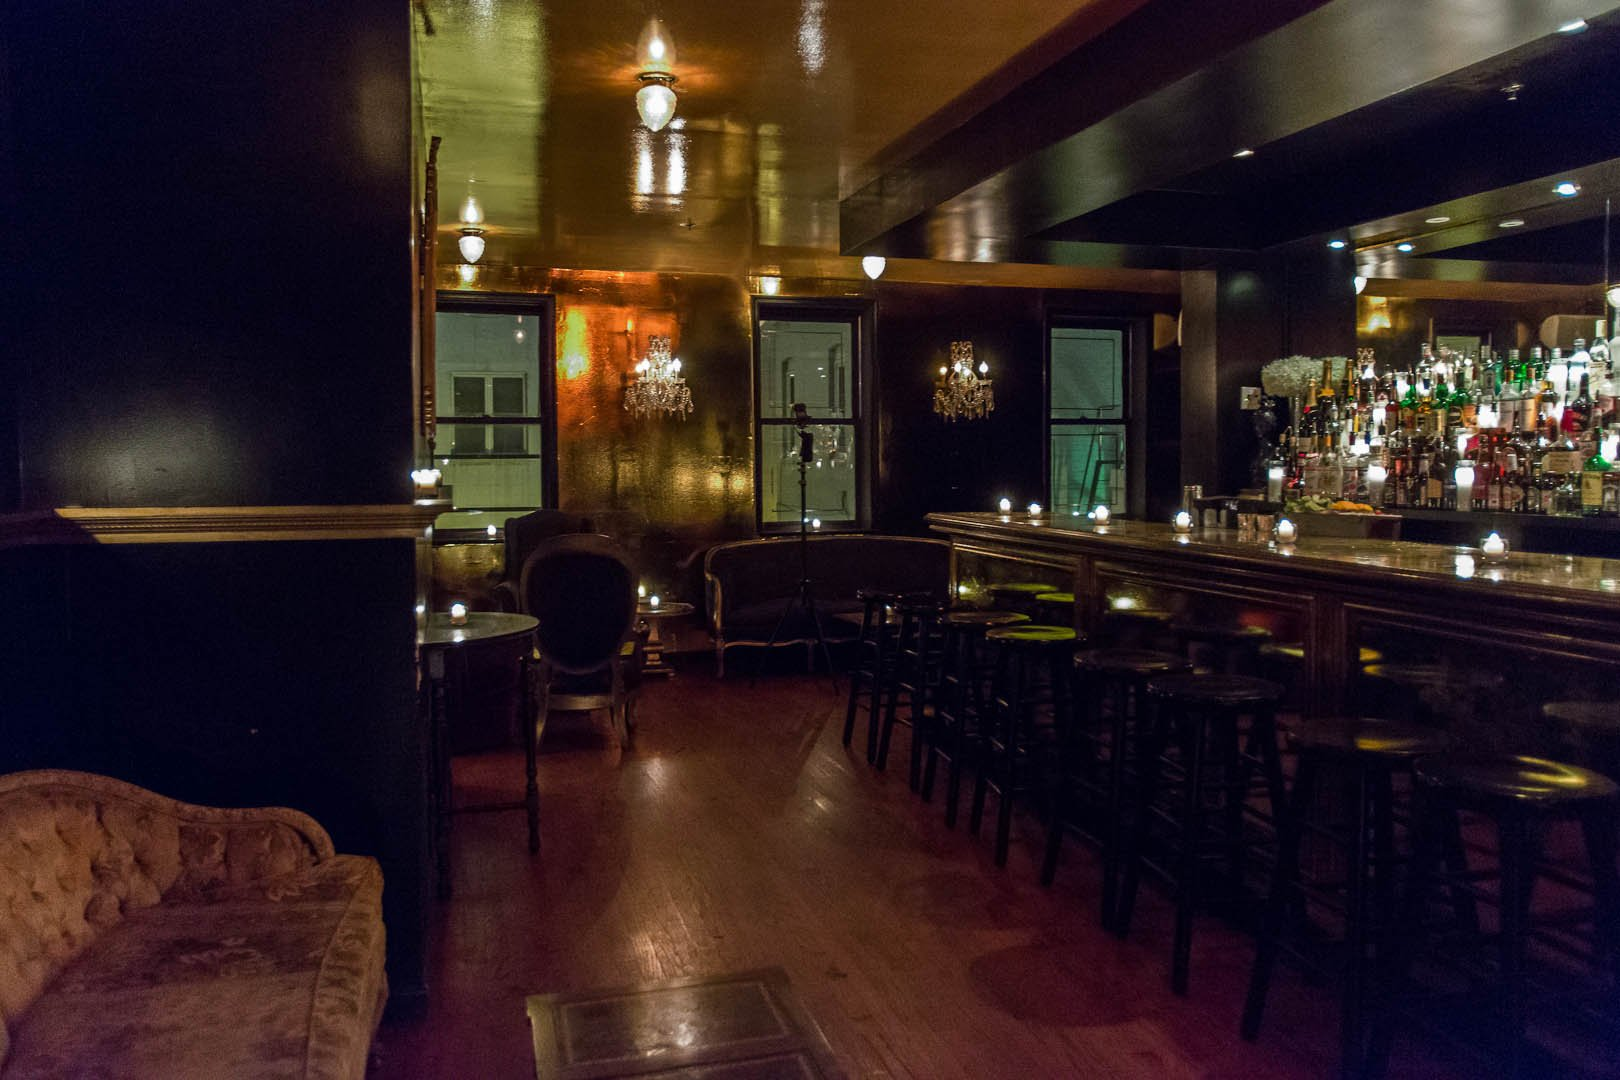 The former Eighteenth Street Lounge on 18th Street. Photo via Eighteenth Street Lounge.